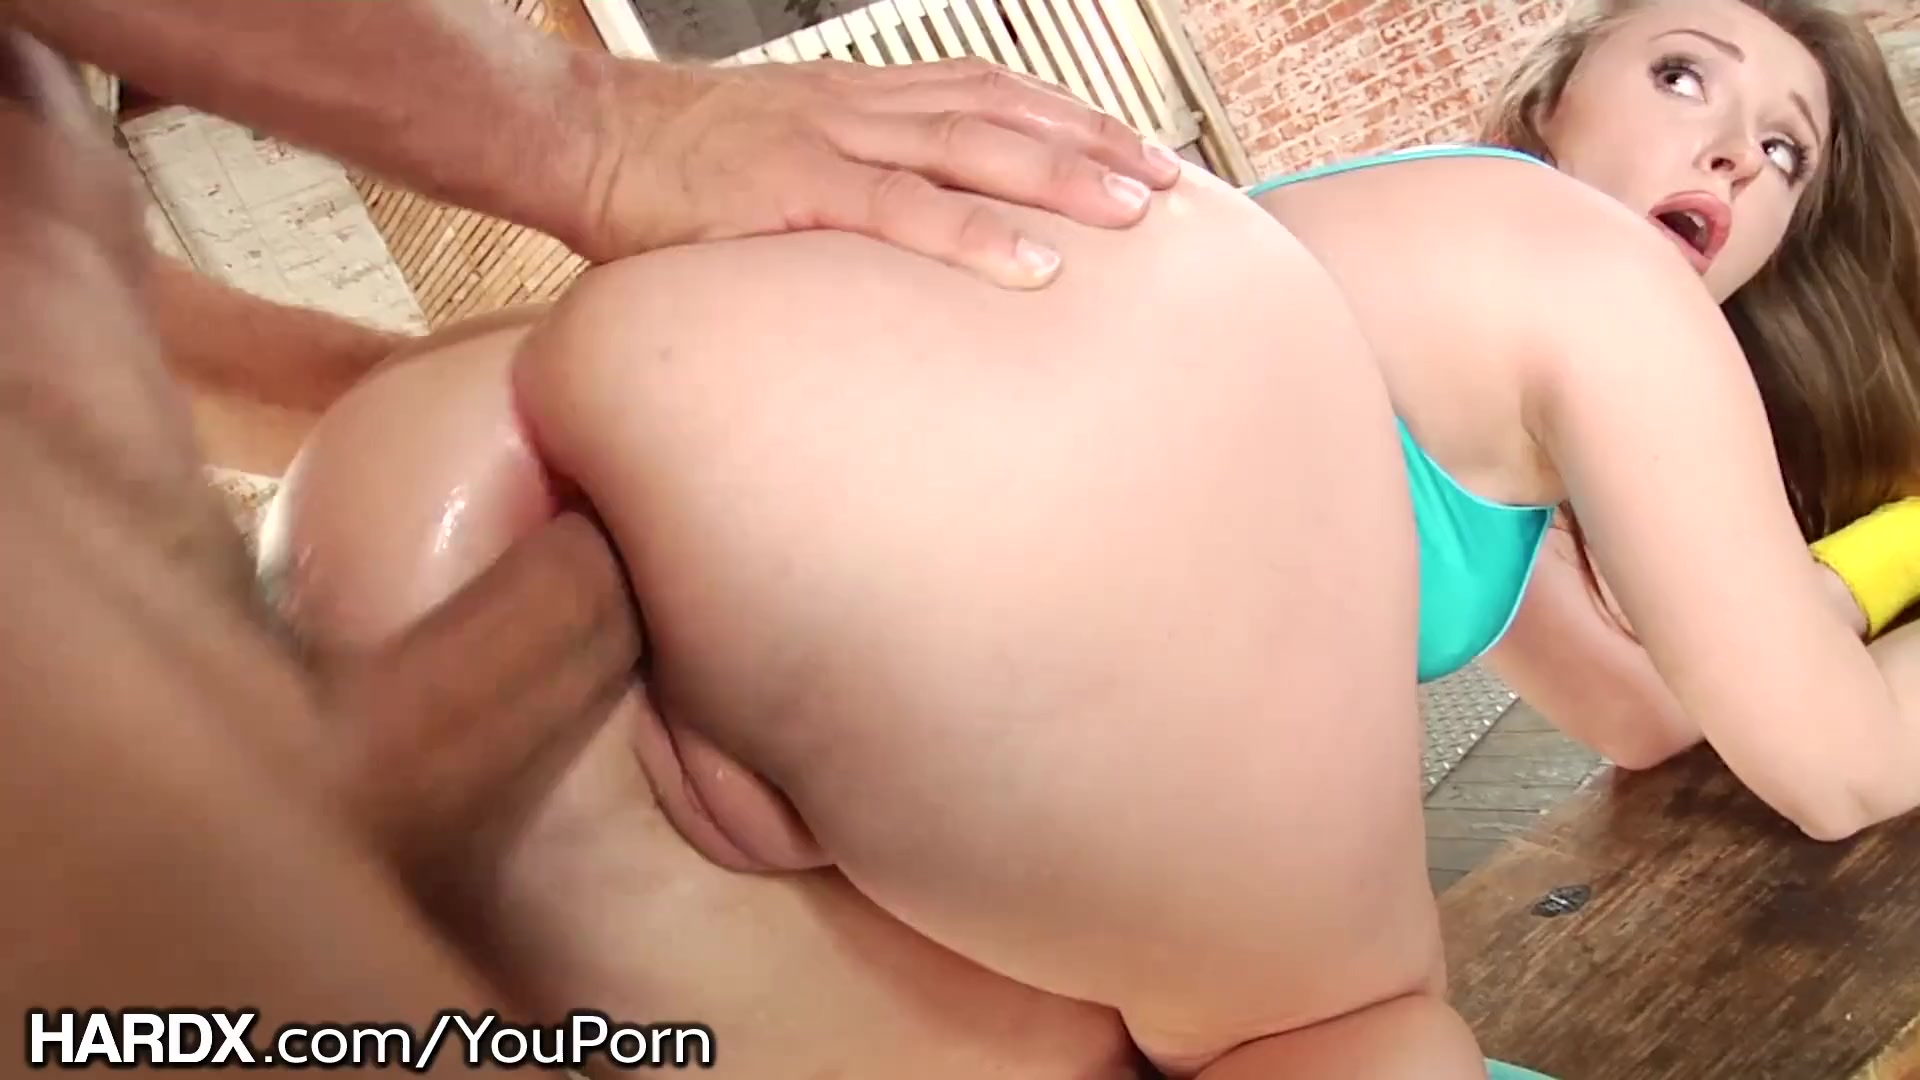 Download free spanish girl with a huge ass anal